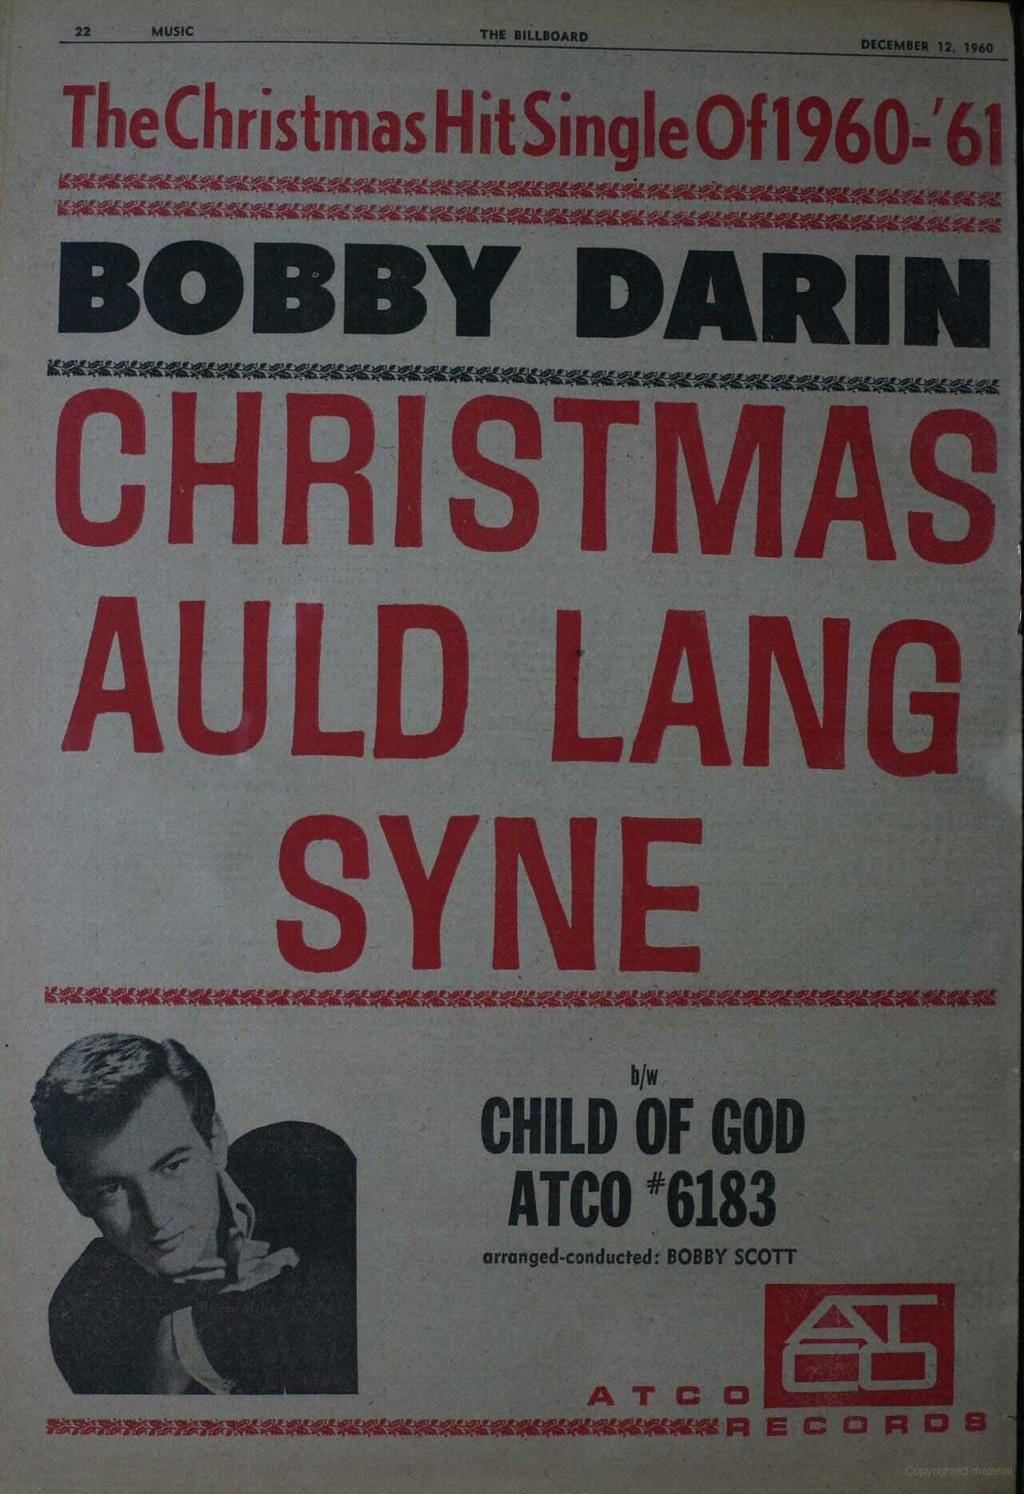 22 MUSIC THE BILLBOARD DECEMBER 12, 1960 TheChrìstmas HitSingIeOfl96O-'61 14-MAKOM-P4ACAKAMWAMAC-AttAlAkMONOM`-41-4Ma.